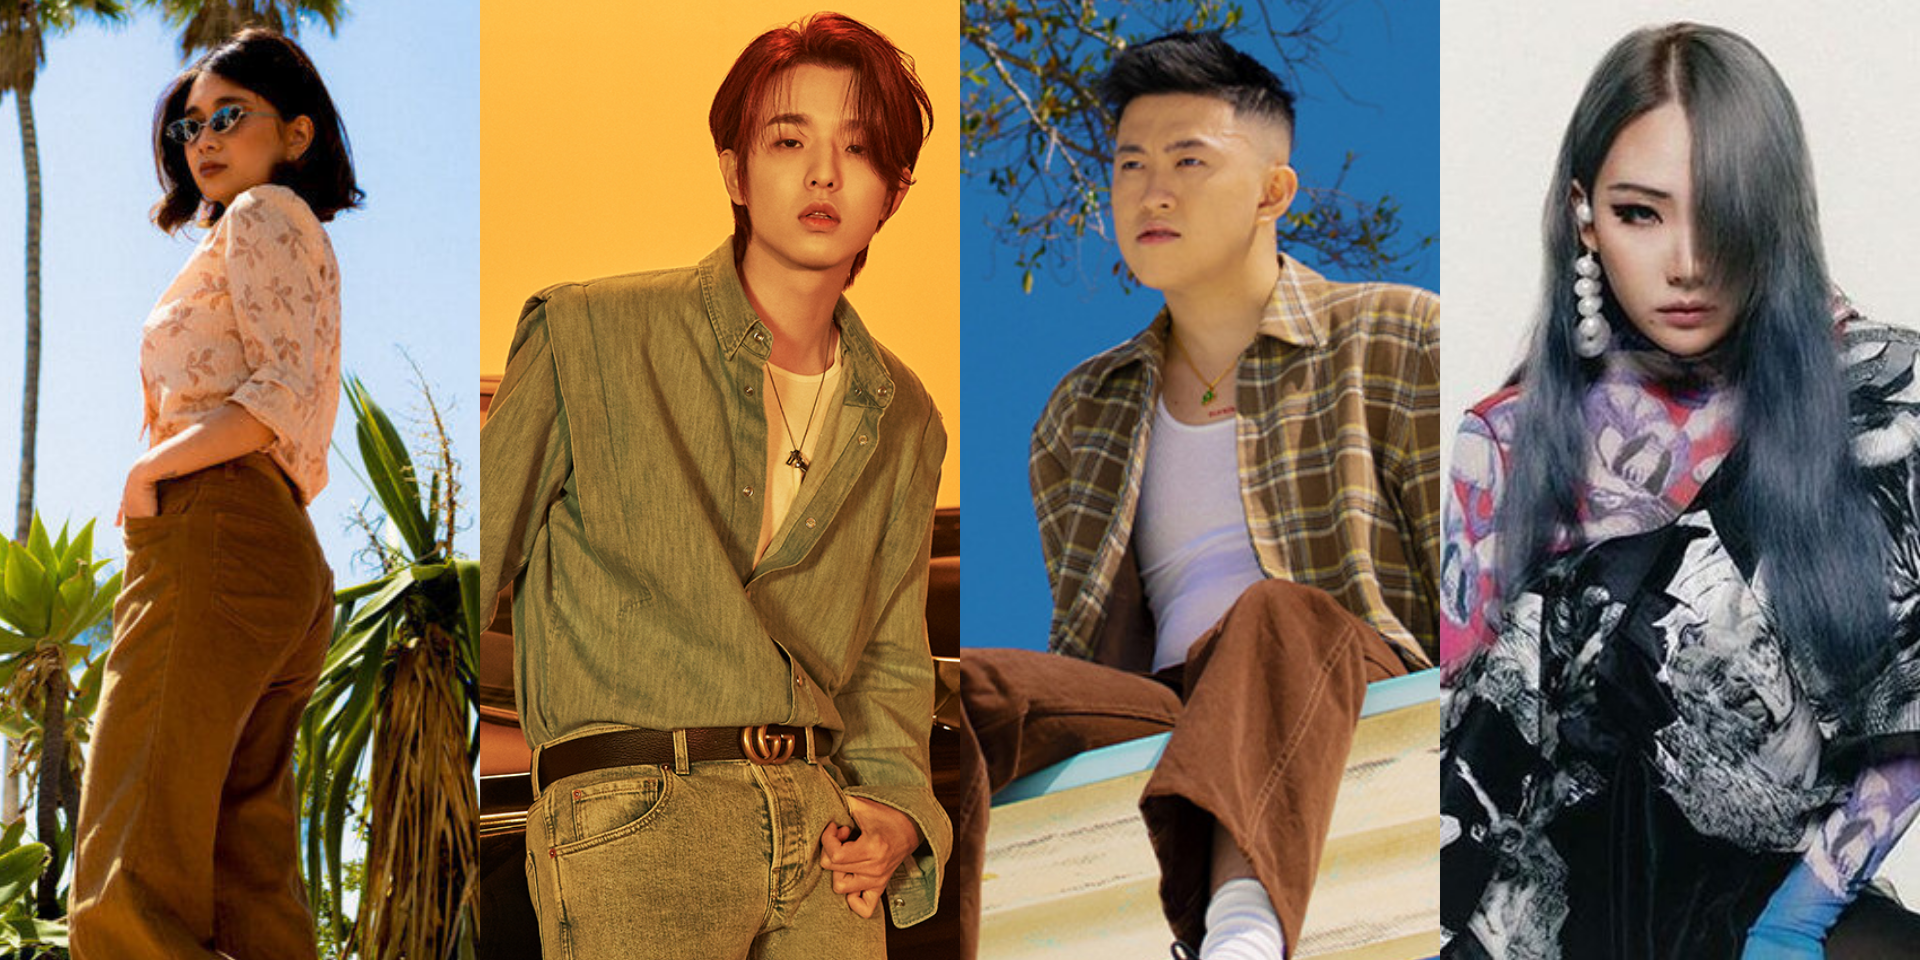 NIKI, Rich Brian, eaJ, CL, and more to perform at 88rising's Head In The Clouds 2021 festival